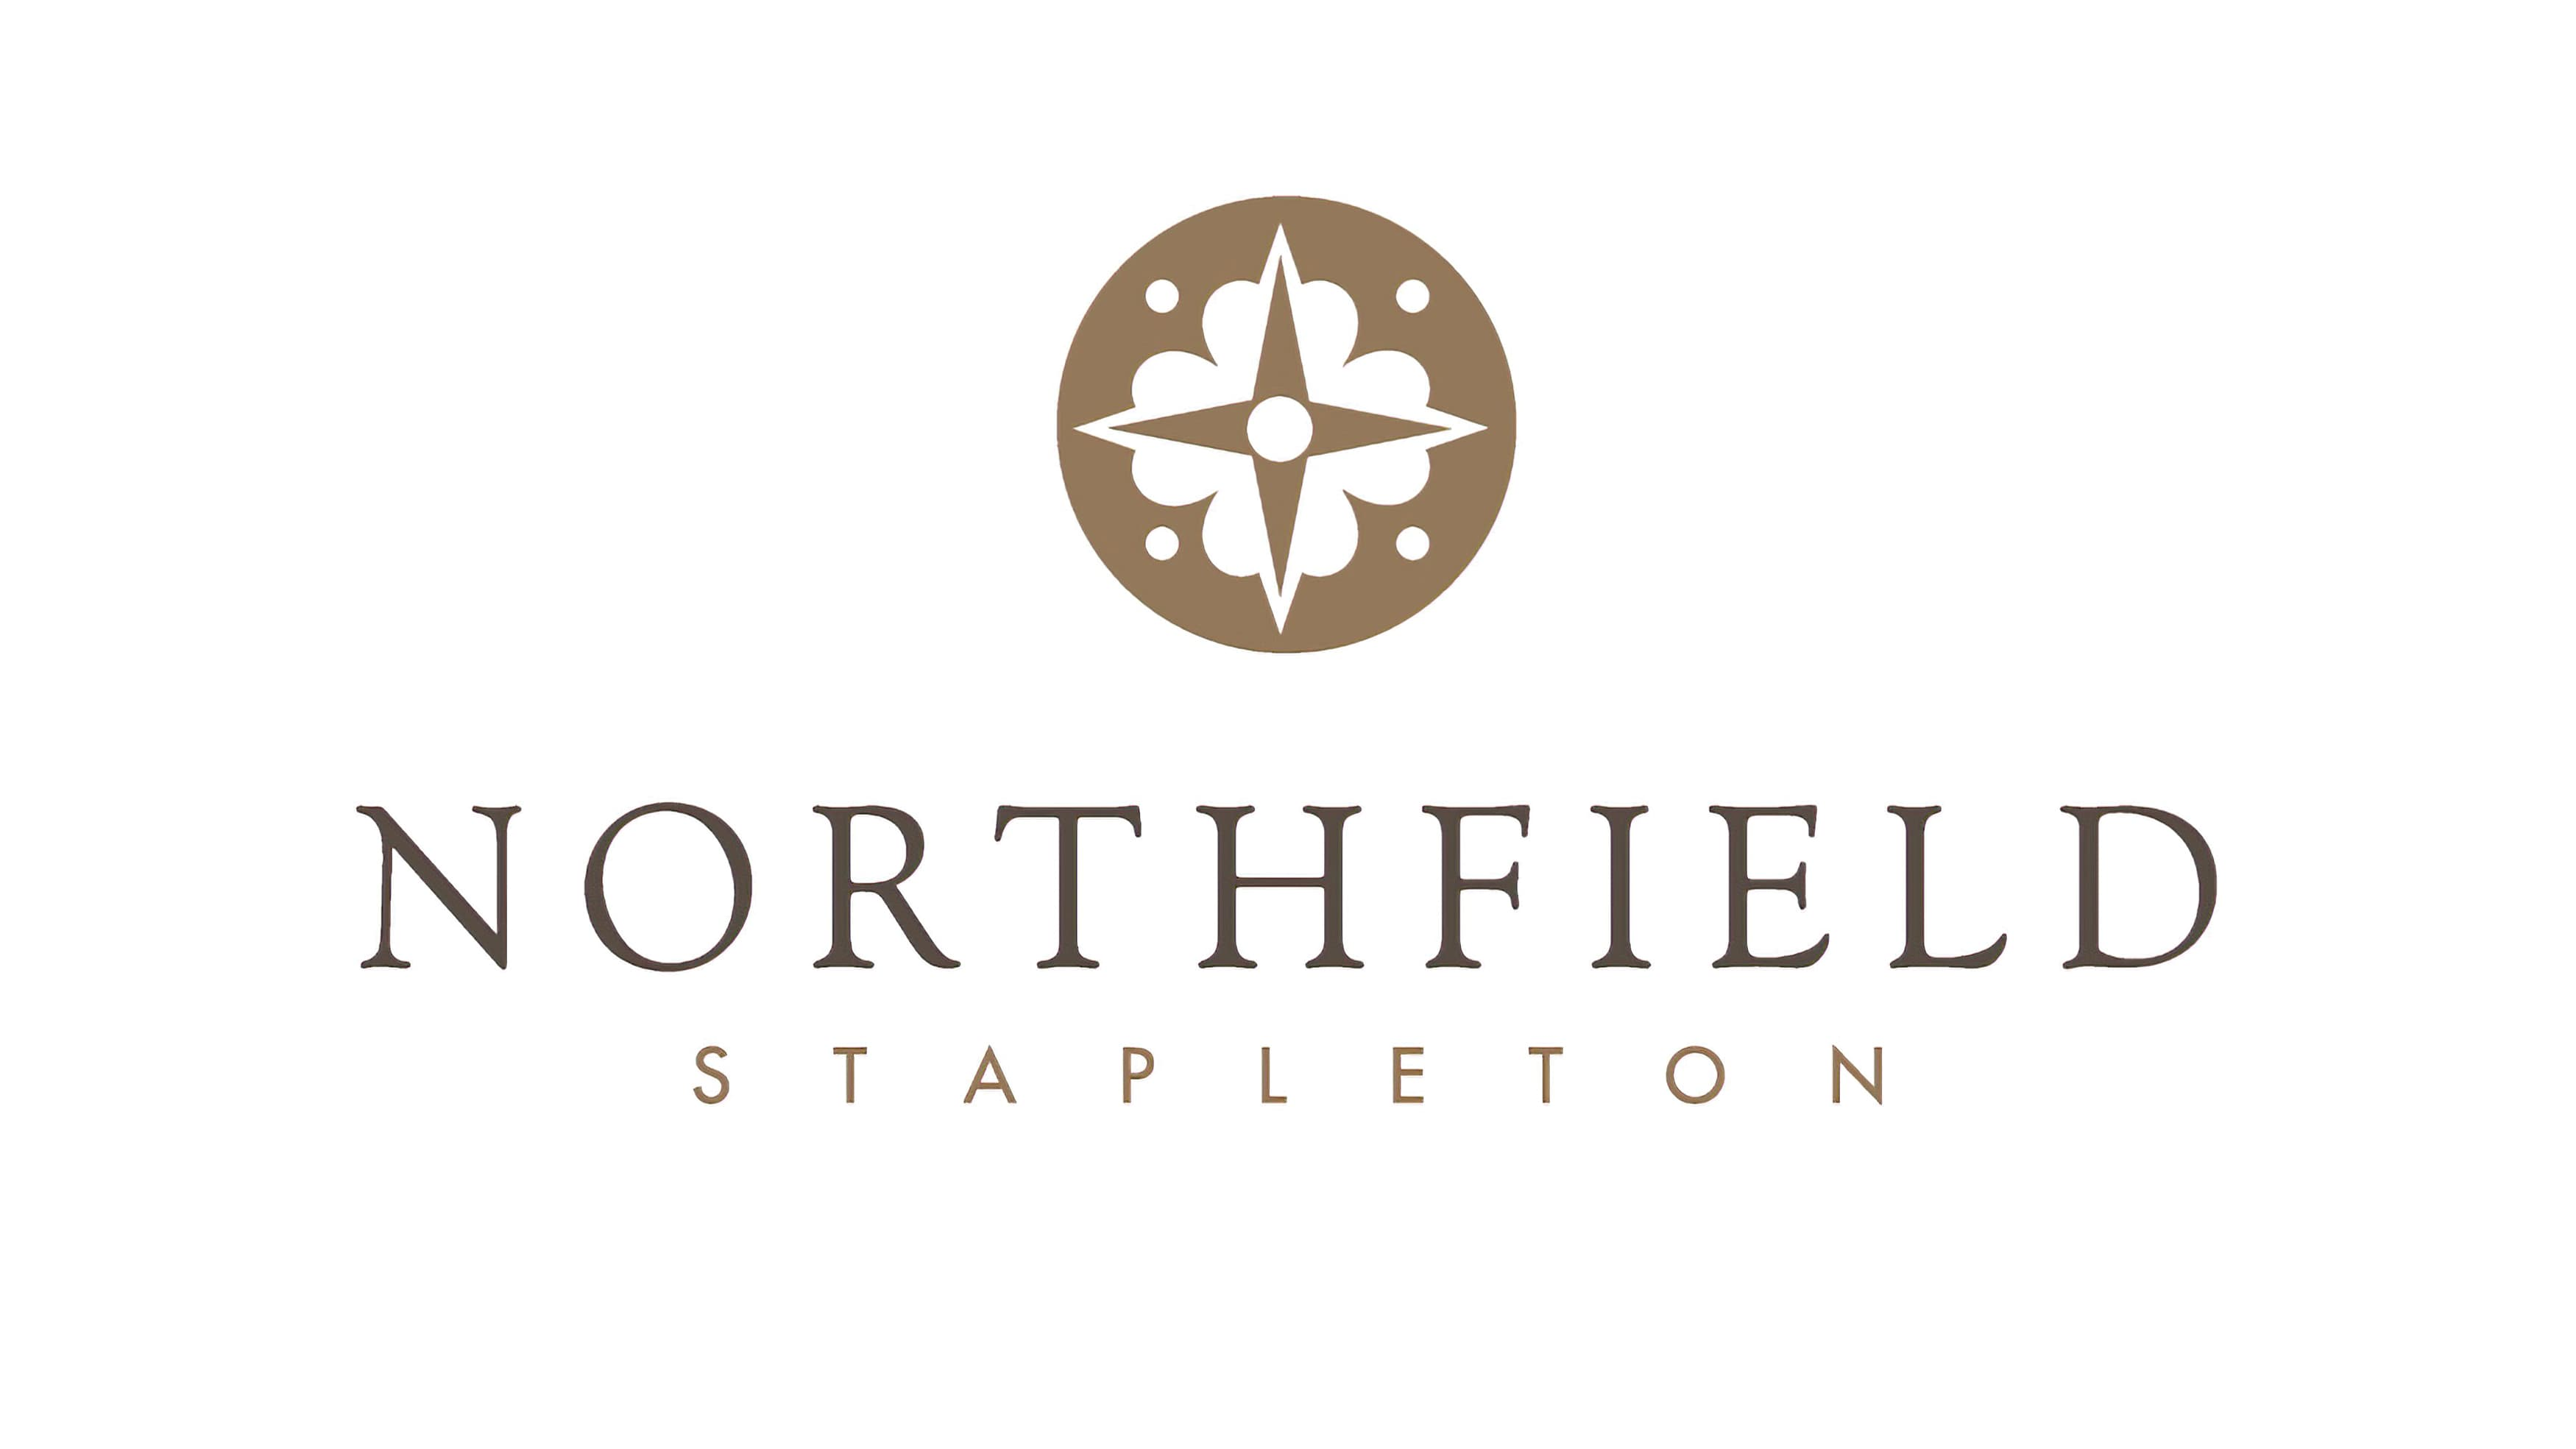 Northfield Stapleton project logo designed by RSM Design